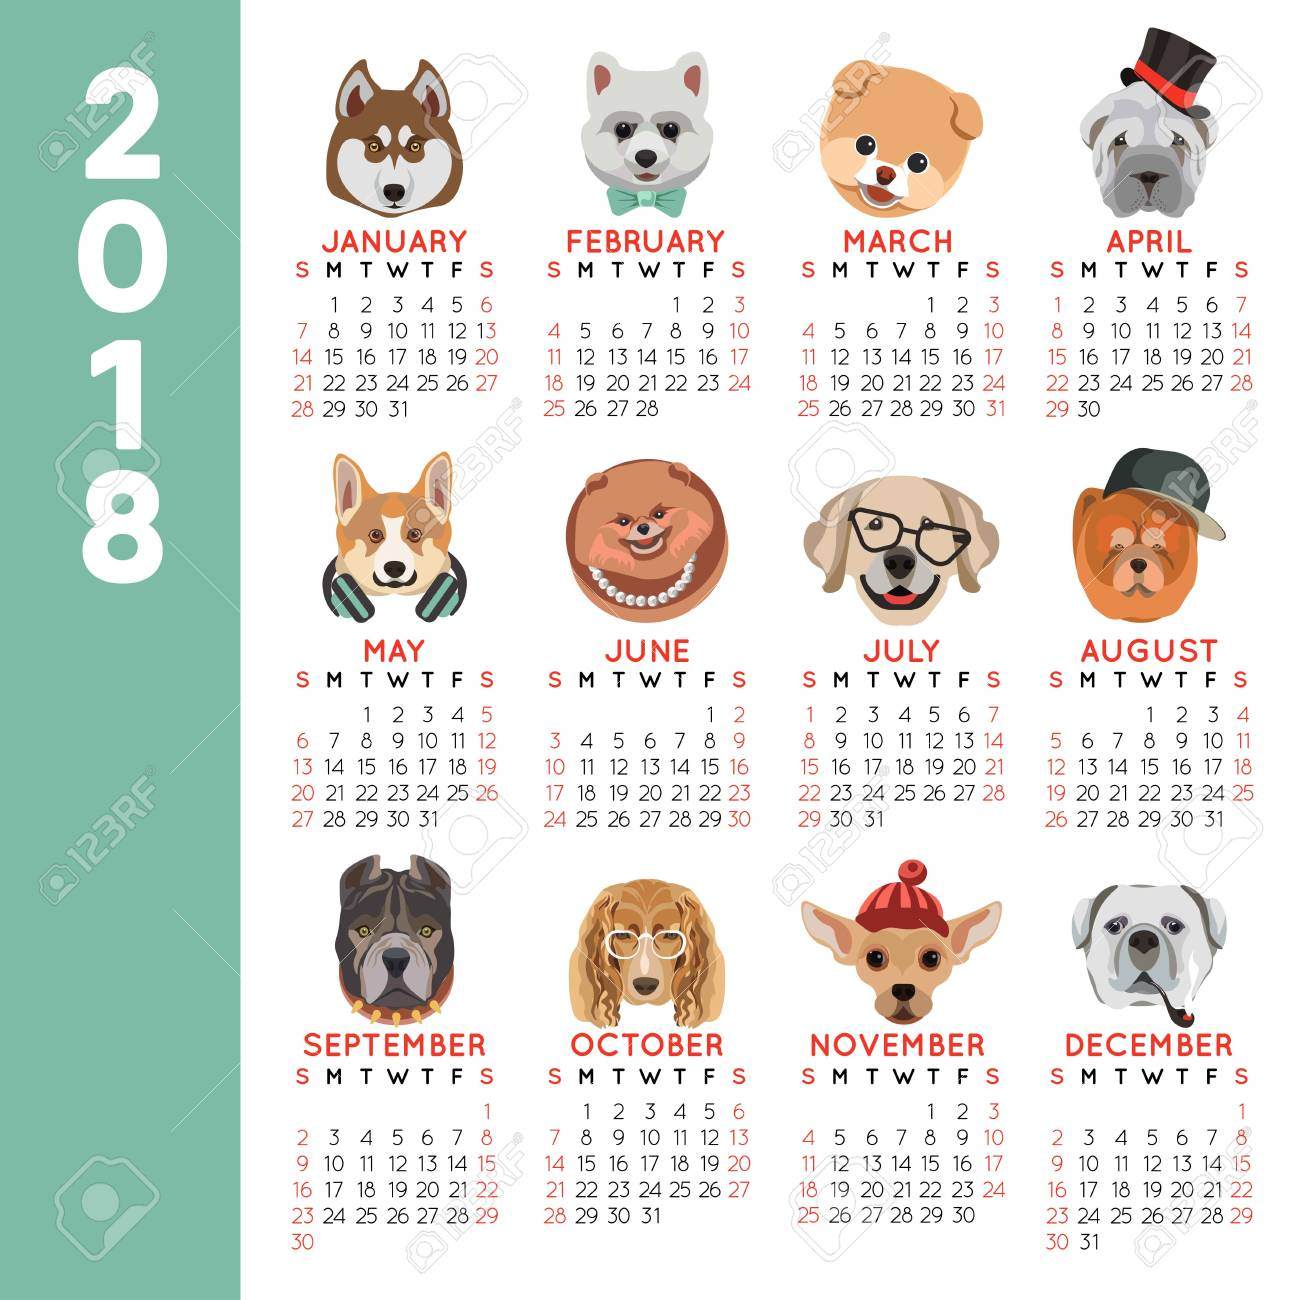 2018 Calendar Dog Year Breed Cartoon Pet Icons Months Royalty Free